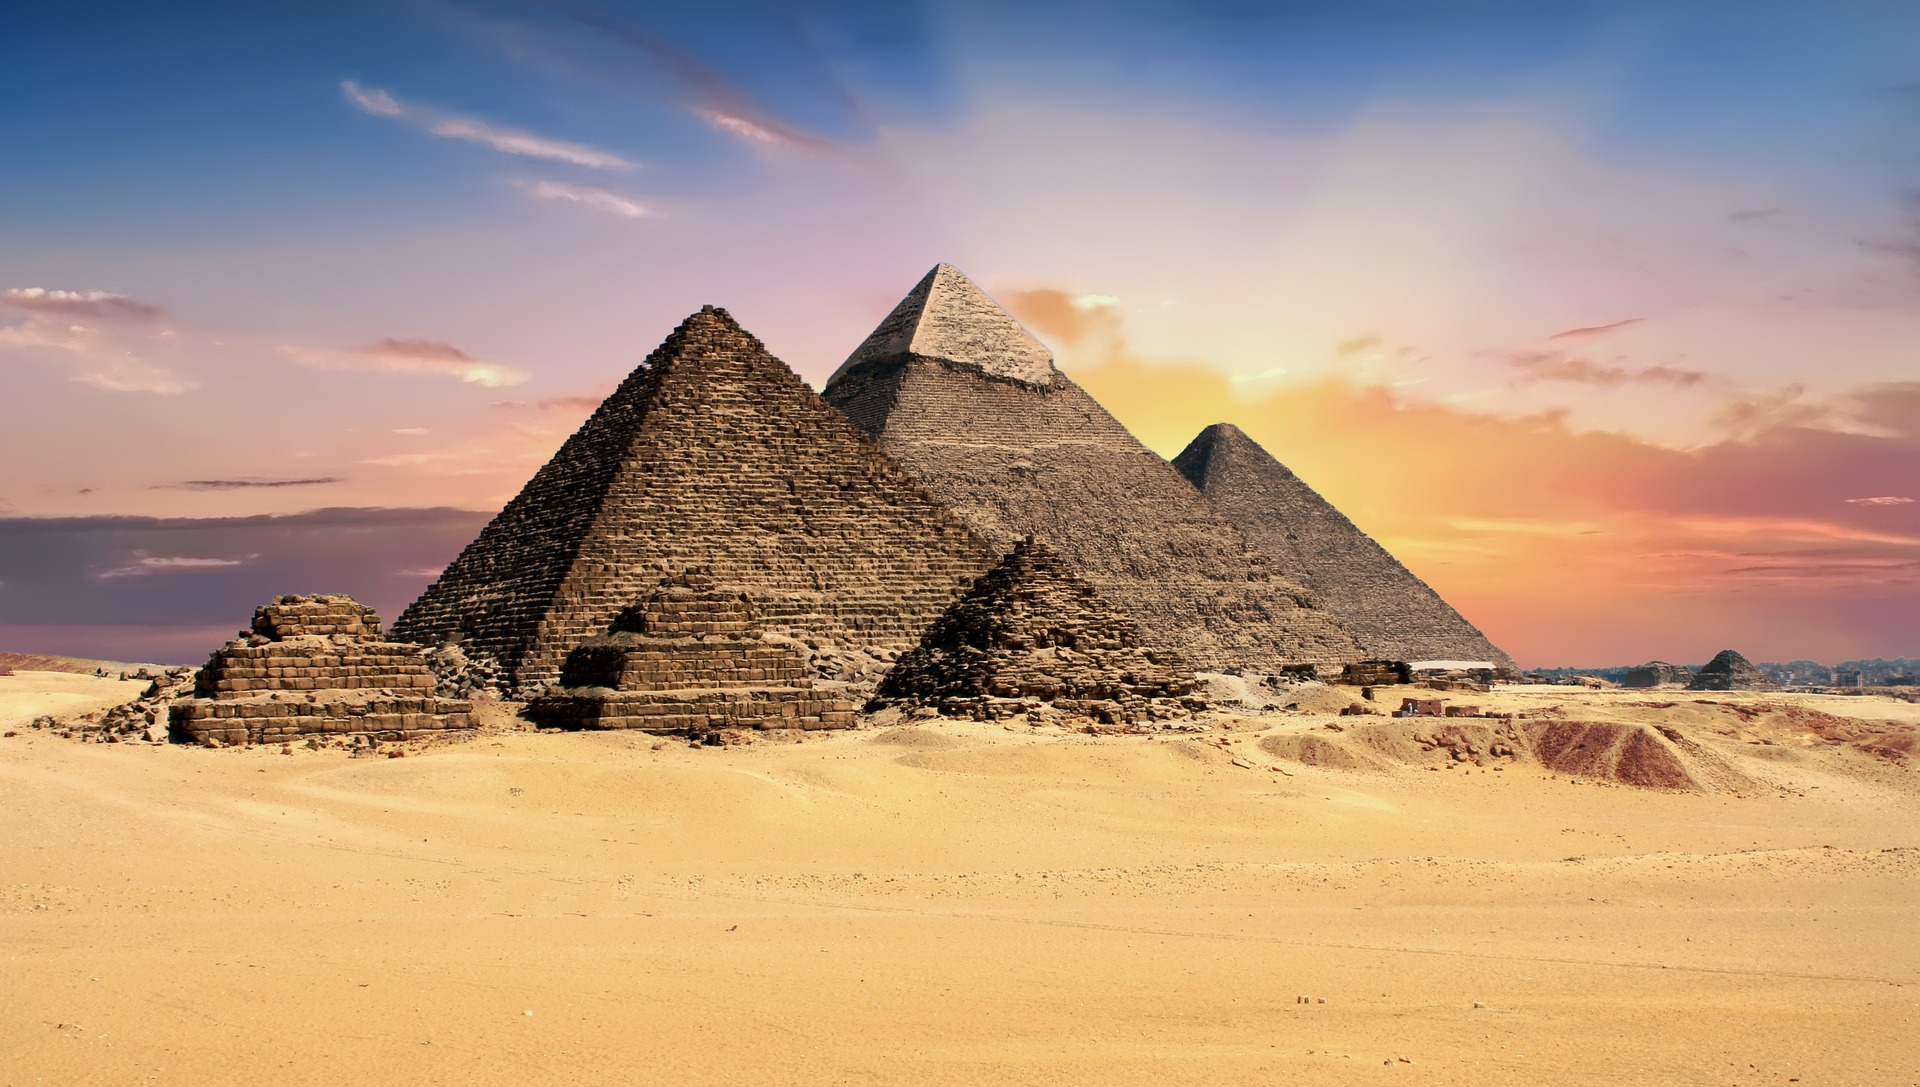 Pyramids at sunrise in Egypt